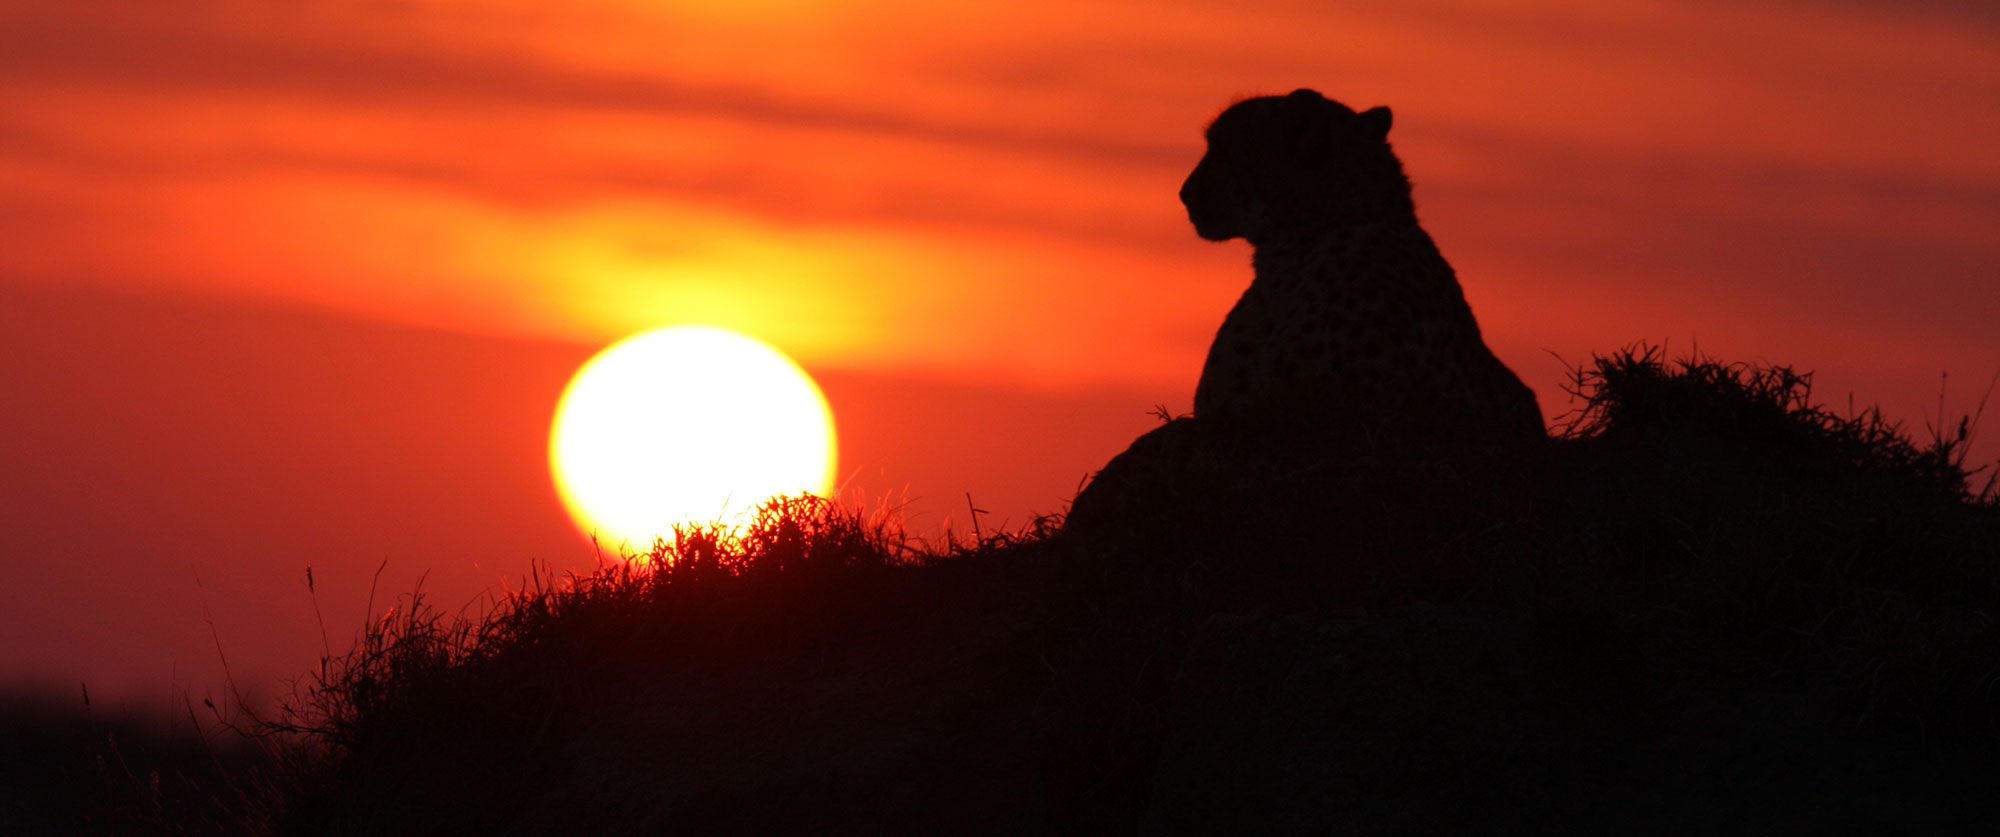 Bucket List Safari: Chobe, Okavango, and Kruger